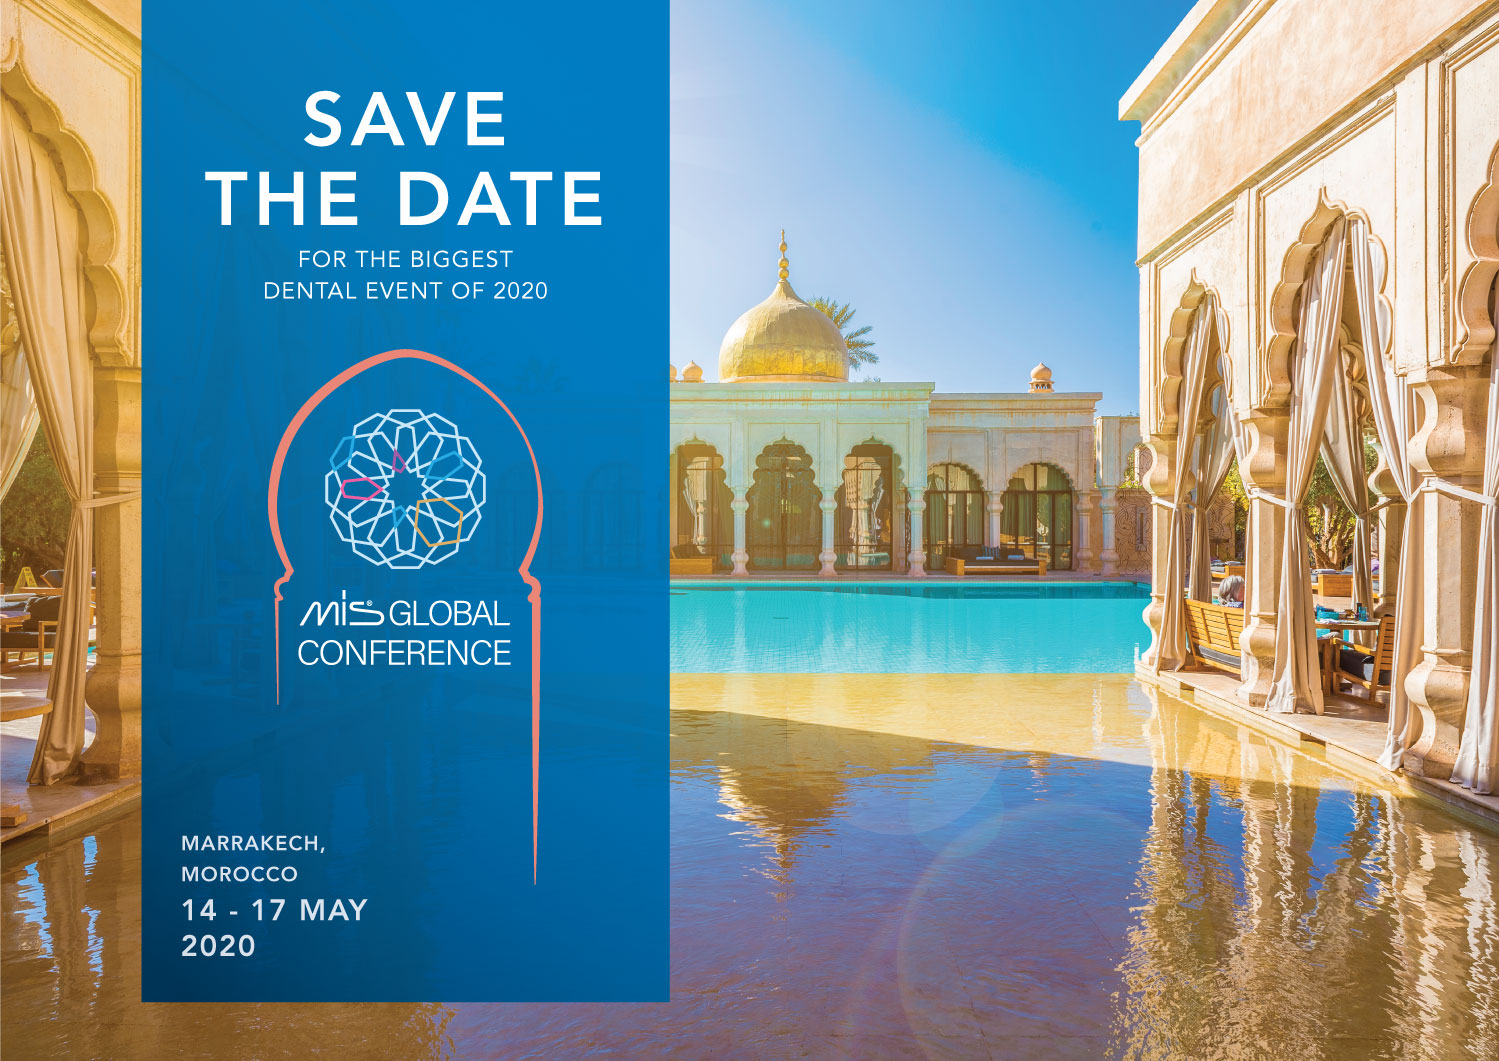 MIS global conference